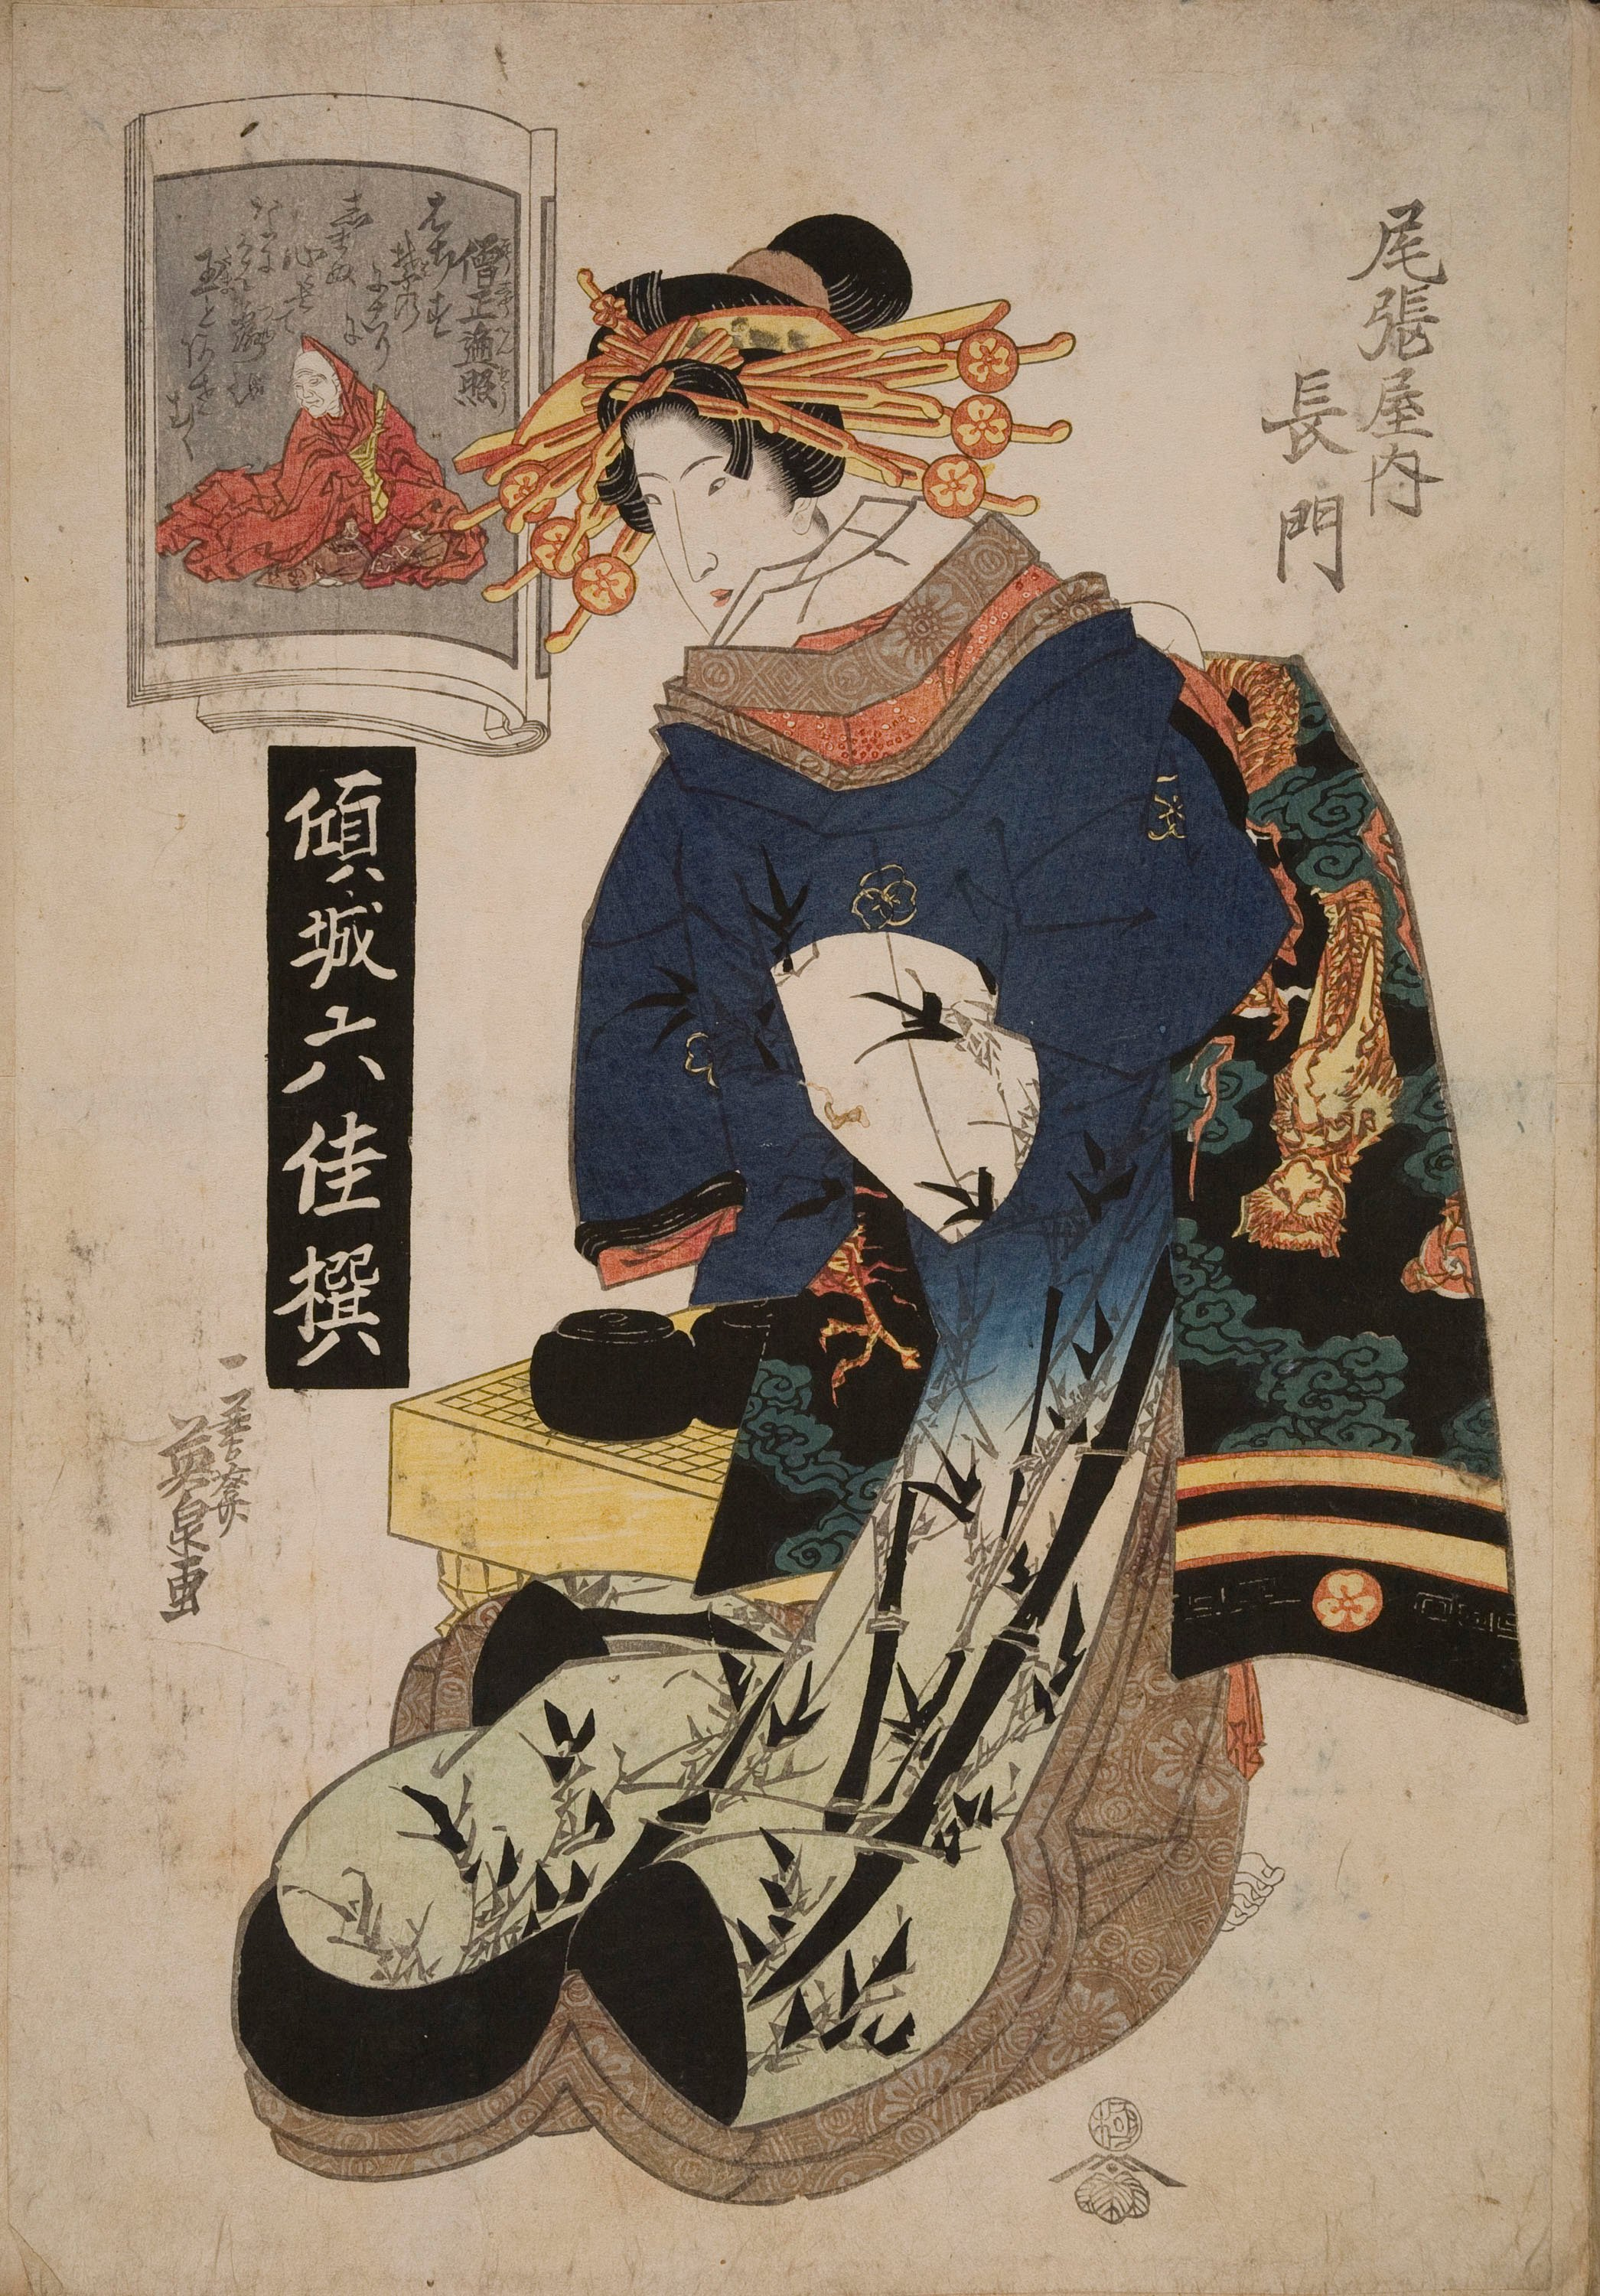 Utagawa Kunisada (Toyokuni III) - Ukiyo-e (album with seventy pictures) - End of the 18th century – mid-19th century [3]